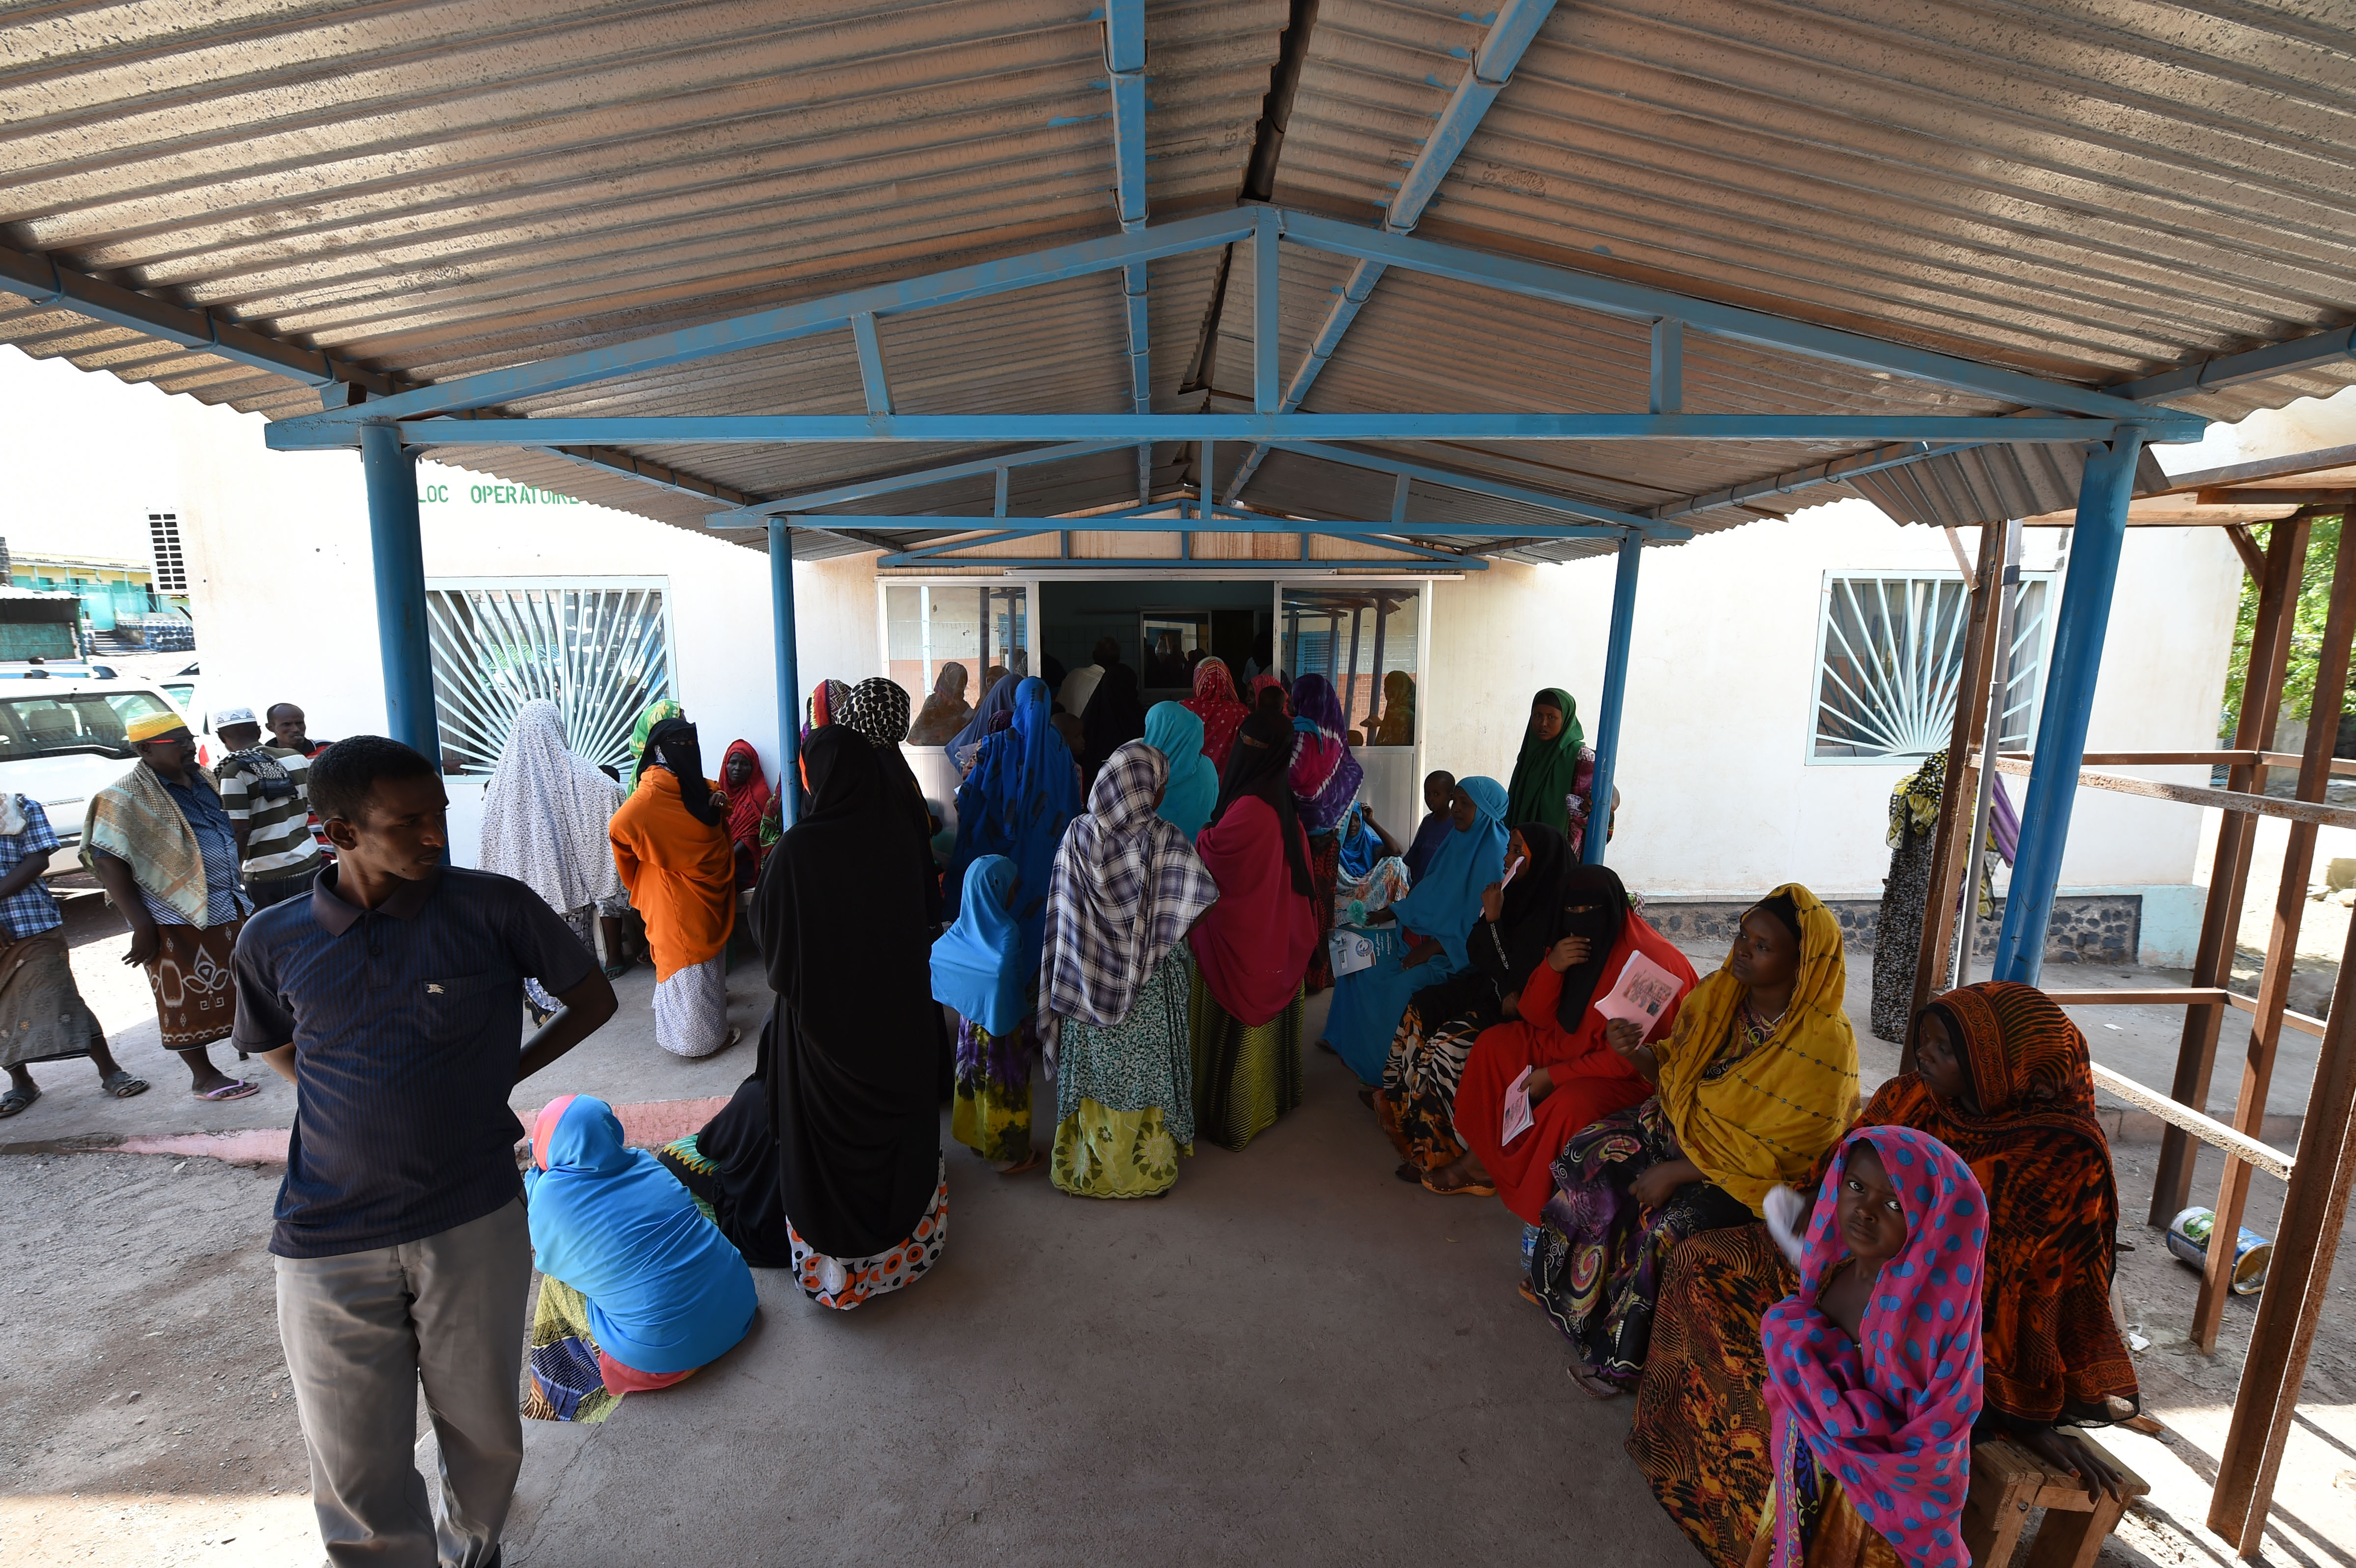 DIKHIL, DJIBOUTI – Villagers of Dikhil, Djibouti, wait to be seen by medical professionals from the 403rd Civil Affairs Battalion, Djibouti Ministry of Health and Cuban medical personnel during a medical civic action program, May 11, 2016. During the two-day program, MEDCAP offers medical care, medication and education to patients and allows the medical teams to work and exchange medical knowledge. (U.S. Air Force photo by Staff Sgt. Tiffany DeNault)